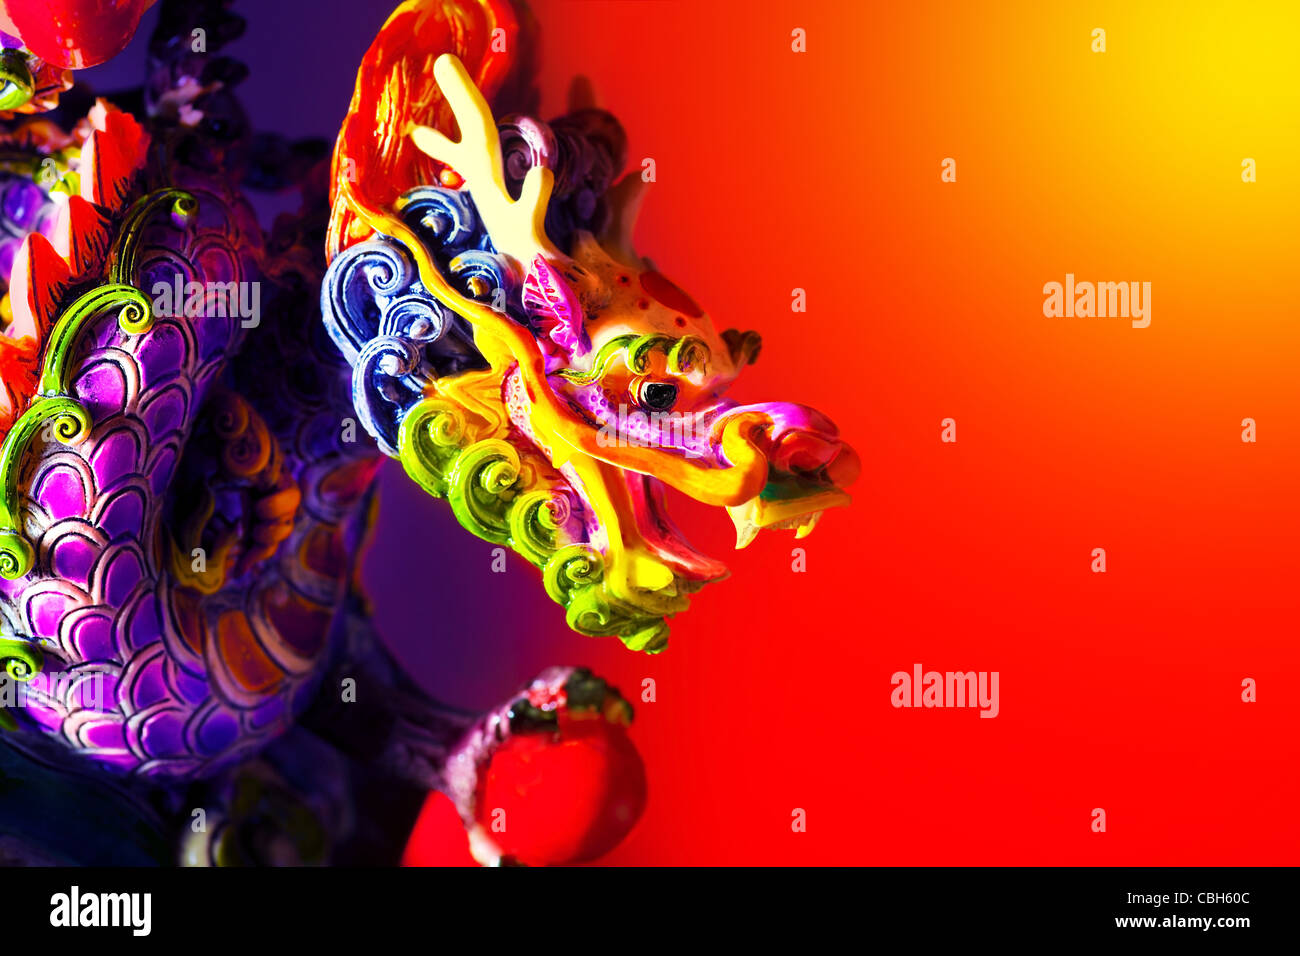 colorful dragon head border traditional asian decoration and ornamental art chinese zodiac astrology sign 2012 new year